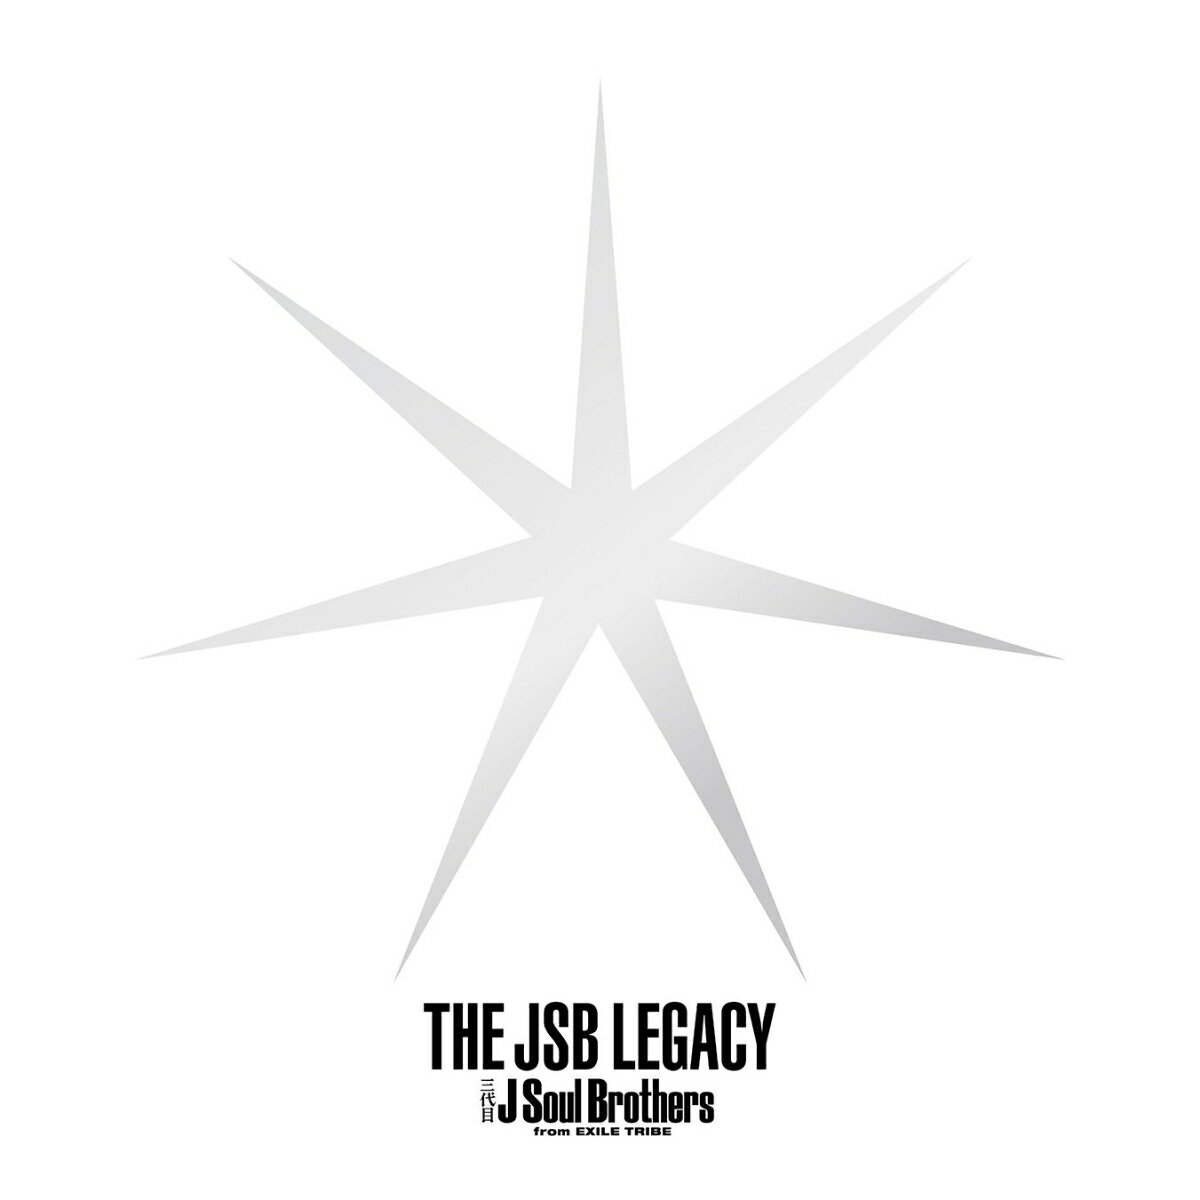 THE JSB LEGACY (初回限定盤 CD+2Blu-ray) [ 三代目 J Soul Brothers from EXILE TRIBE ]